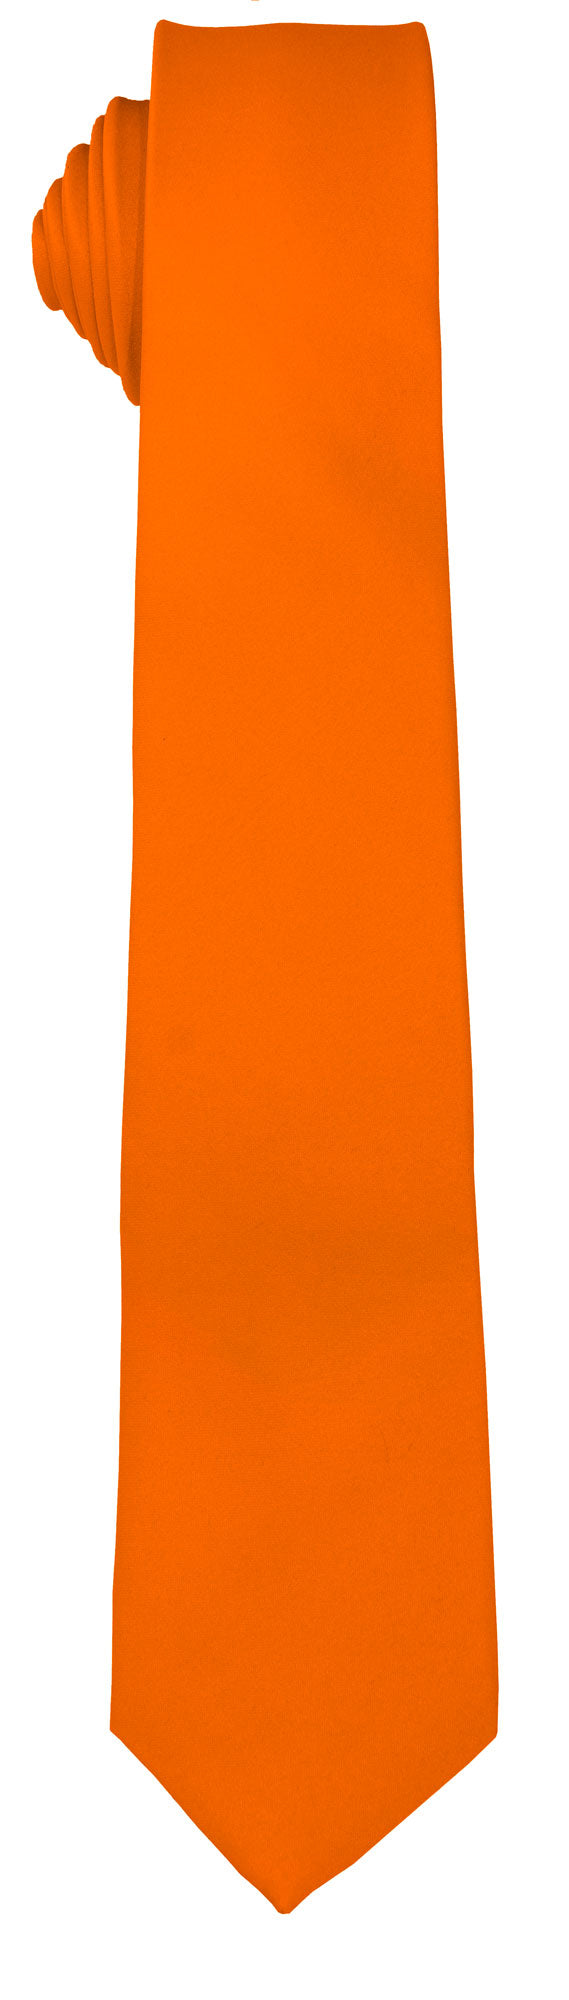 Orange Skinny Tie